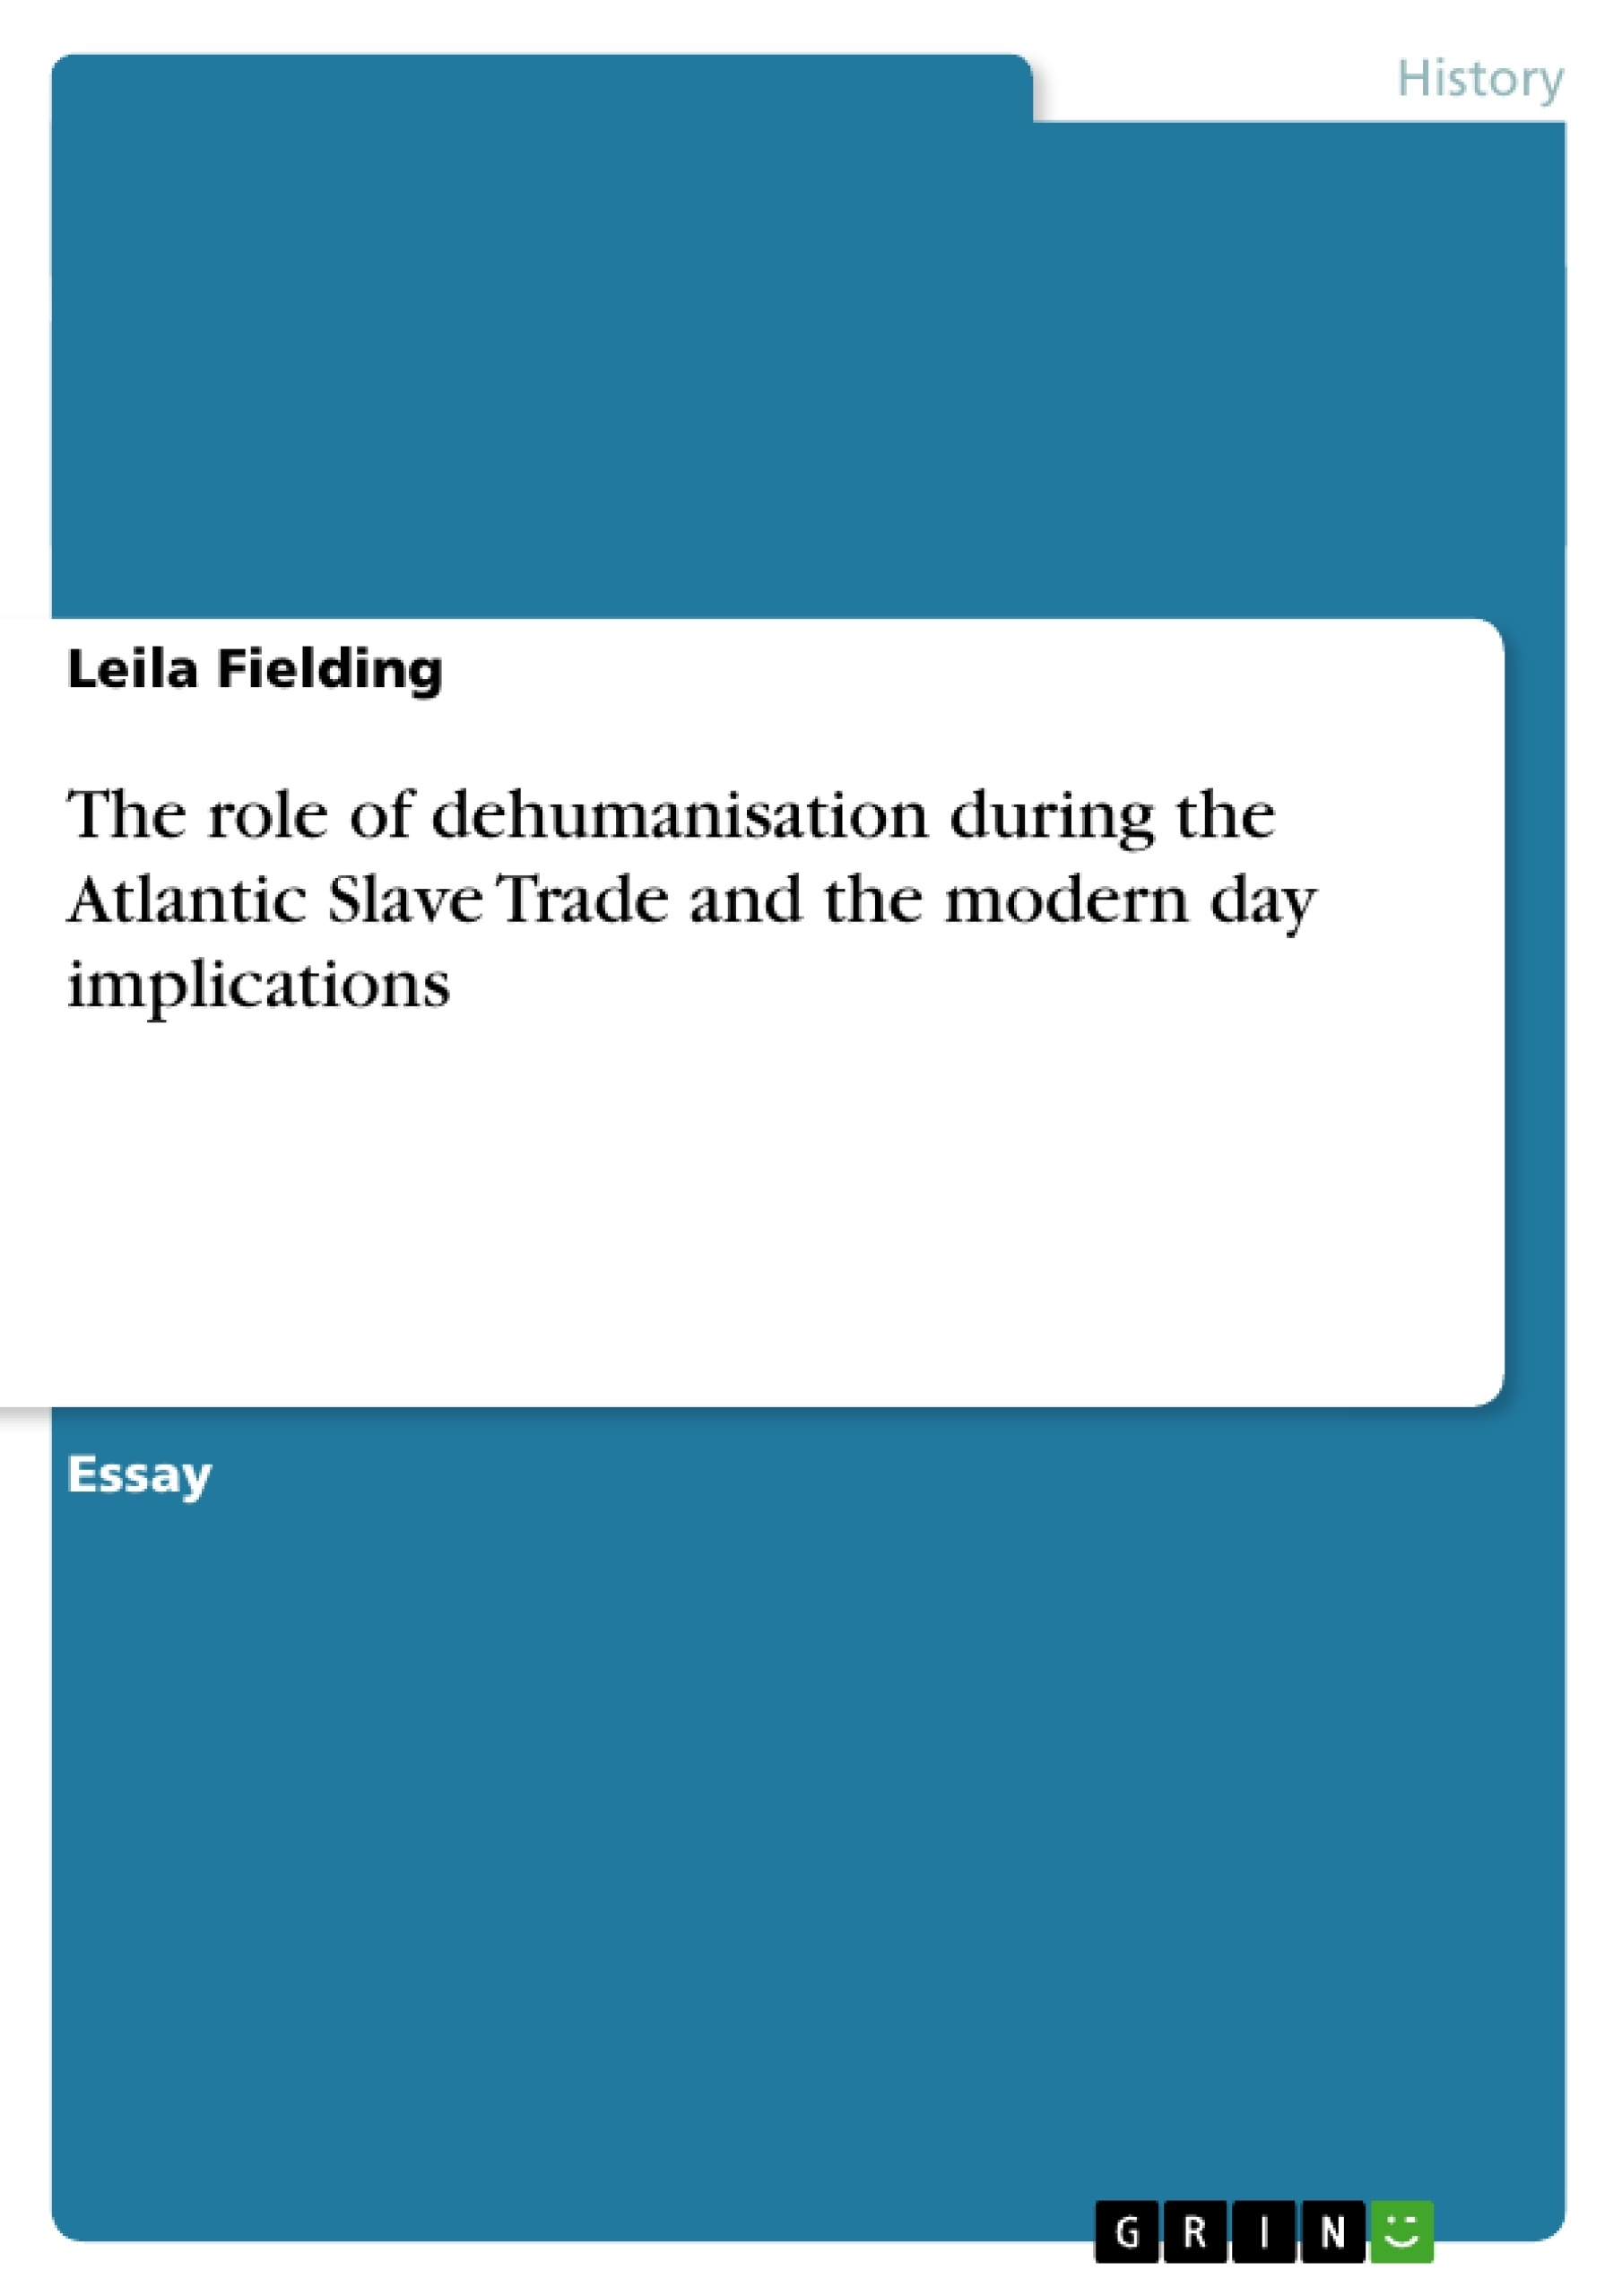 the role of dehumanisation during the atlantic slave trade and the the role of dehumanisation during the atlantic slave trade and the publish your master s thesis bachelor s thesis essay or term paper